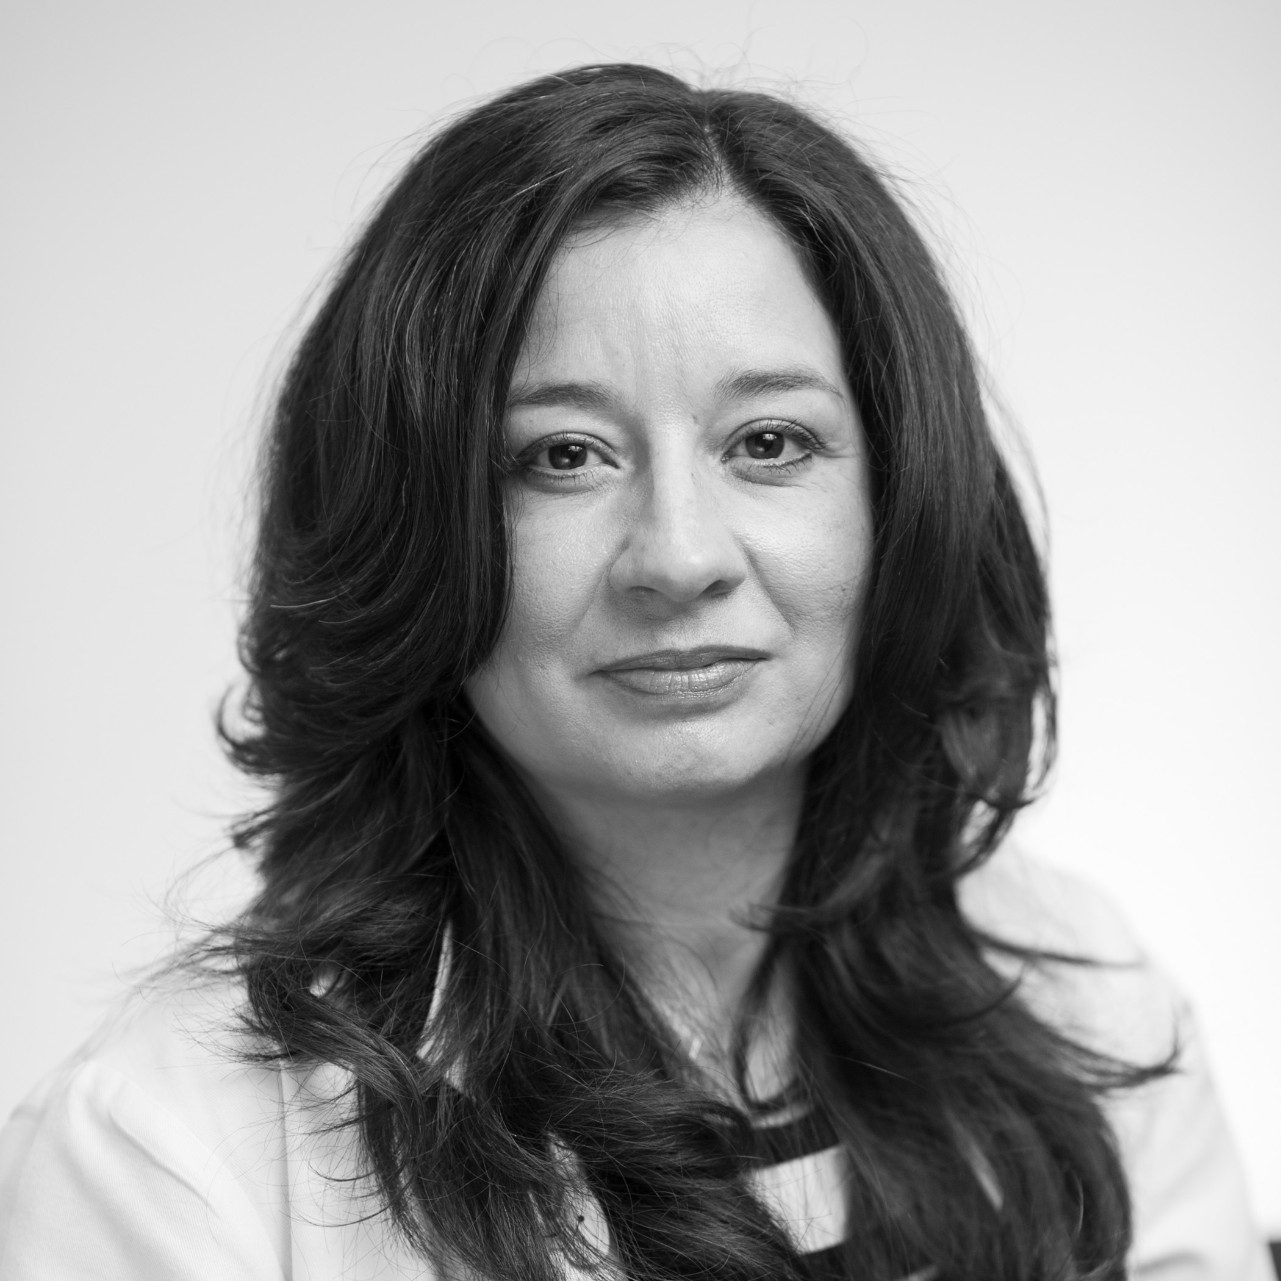 Maria E. Cabanillas, M.D., an oncologic endocrinologist who specializes in the treatment of thyroid cancer